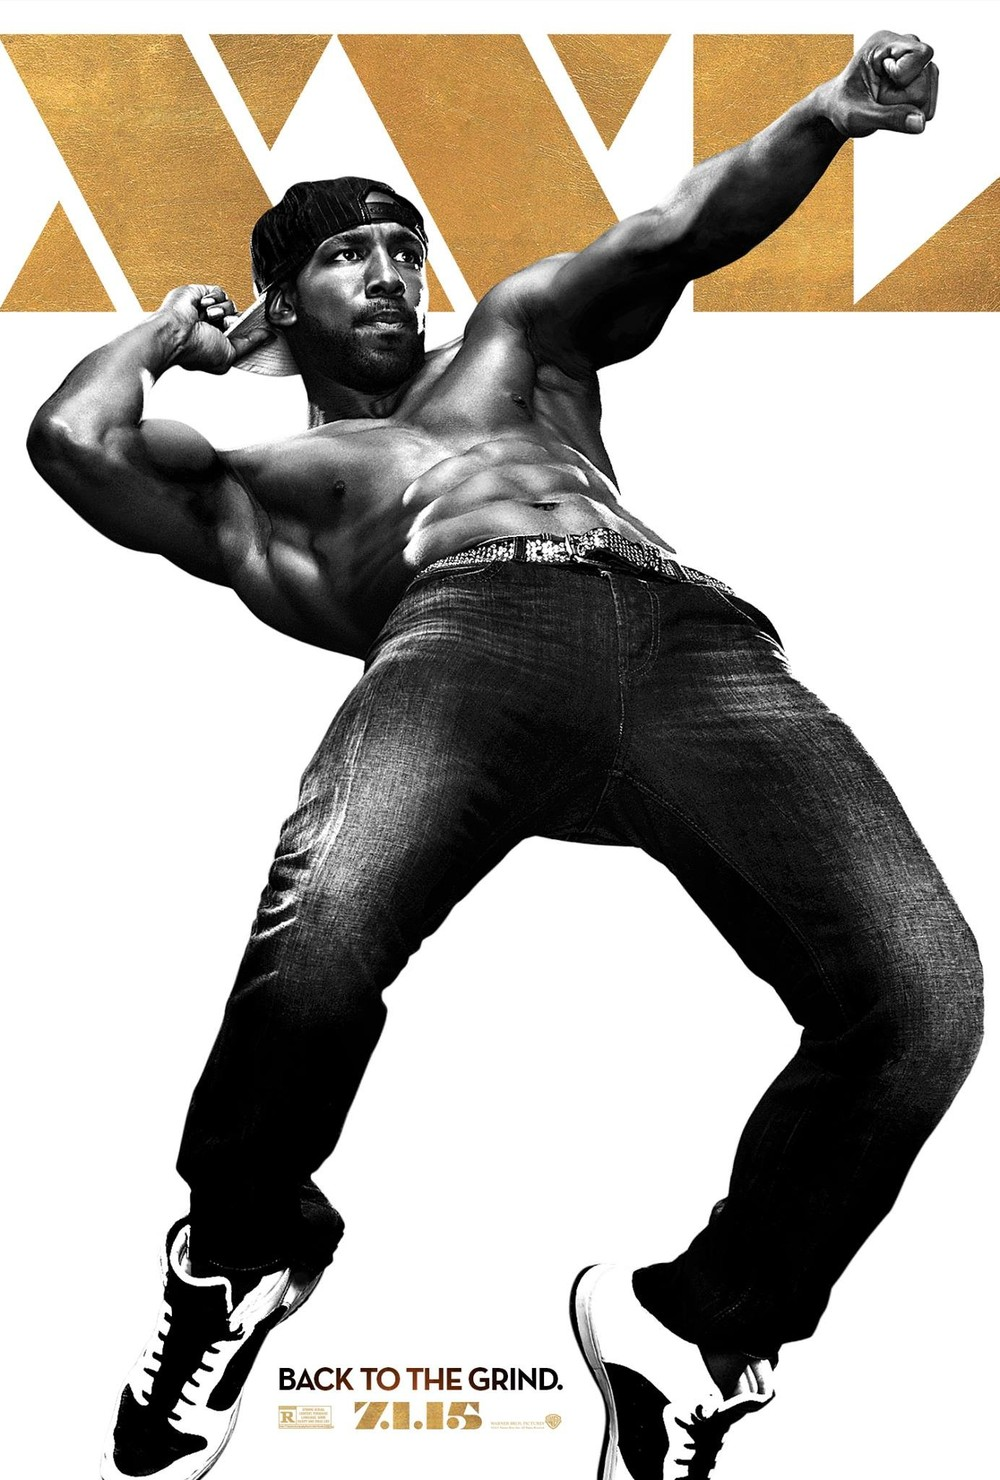 Magic mike xxl release date